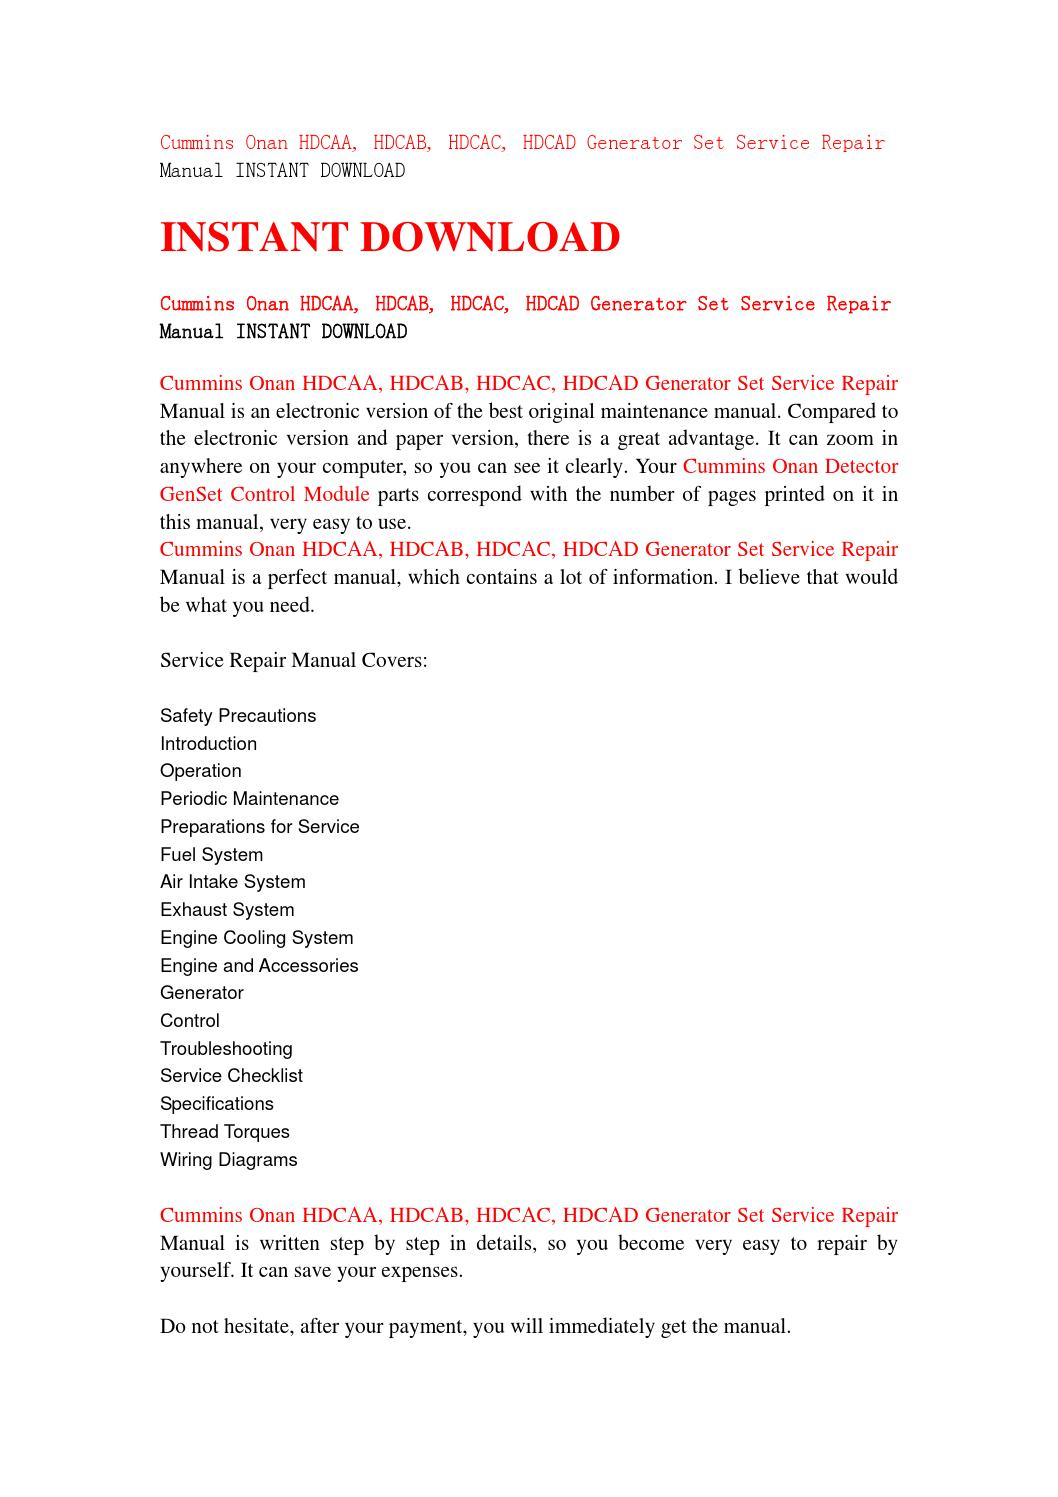 Cummins Onan Hdcaa Hdcab Hdcac Hdcad Generator Set Service Repair Fuel Pump Wiring Diagram Manual Instant Download By Jfhsjefn67 Issuu